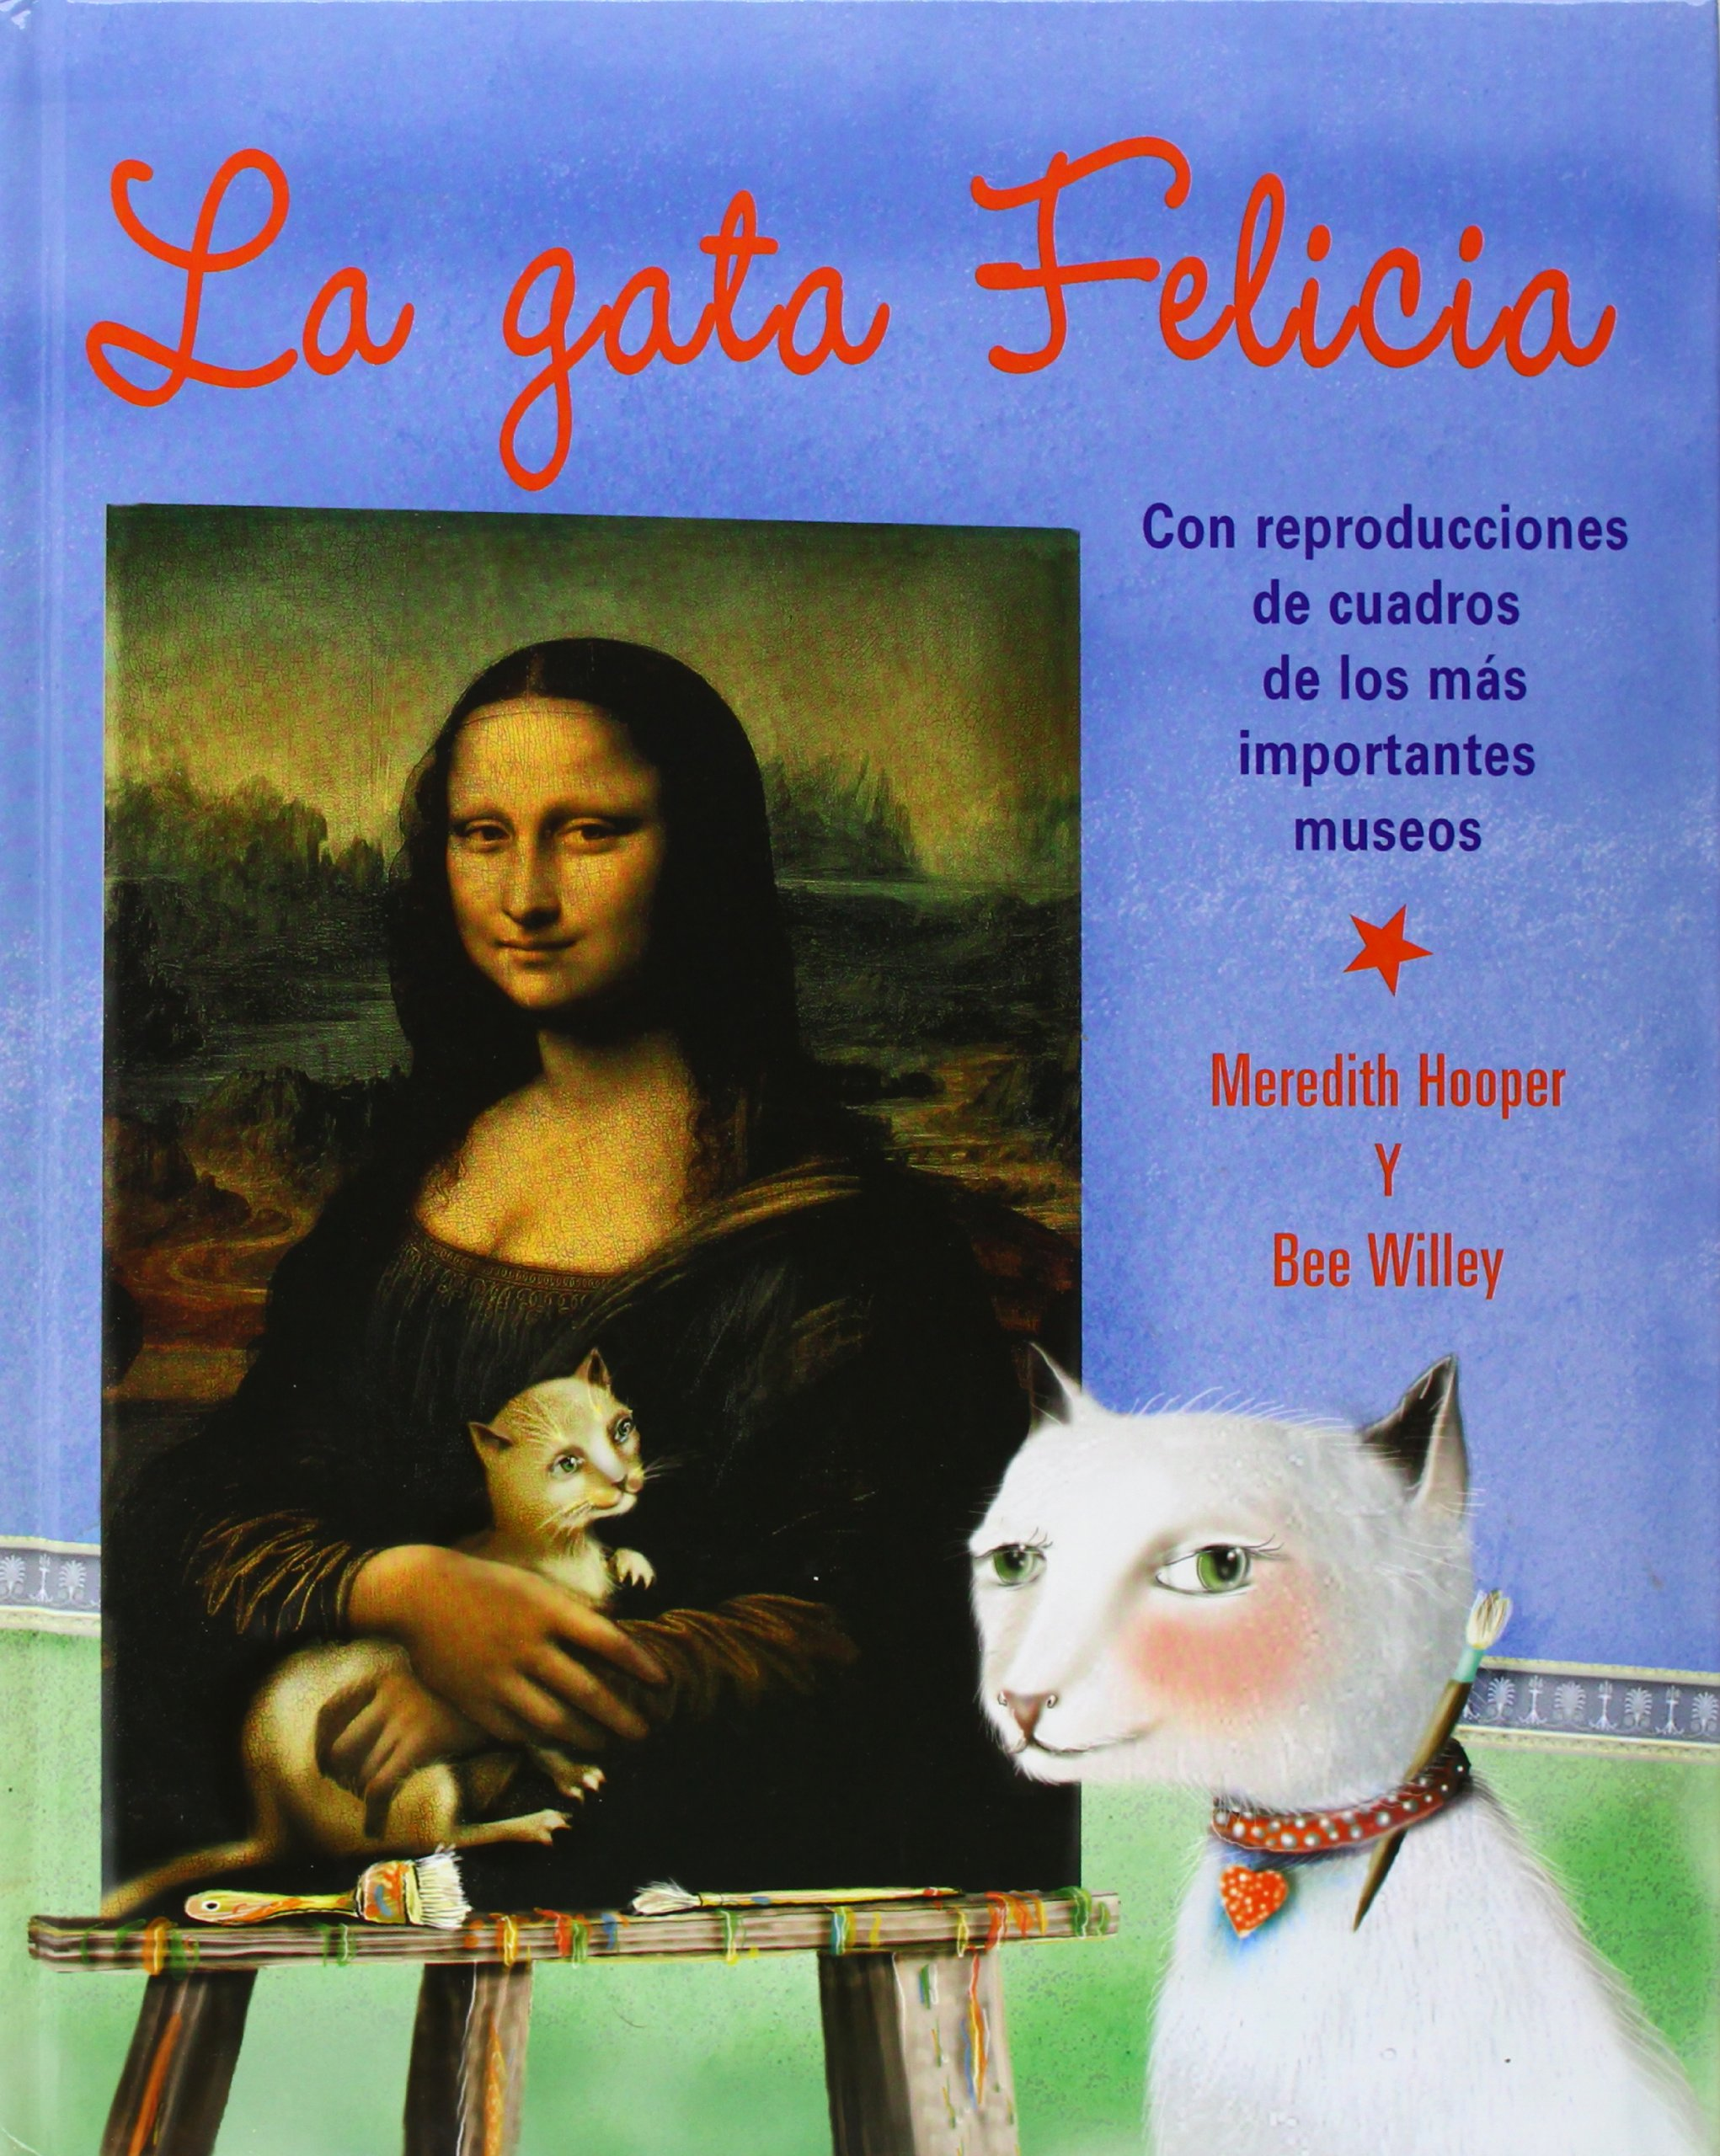 La Gata Felicia / Felicia the Cat (Spanish Edition) (Spanish) Hardcover – July 30, 2006